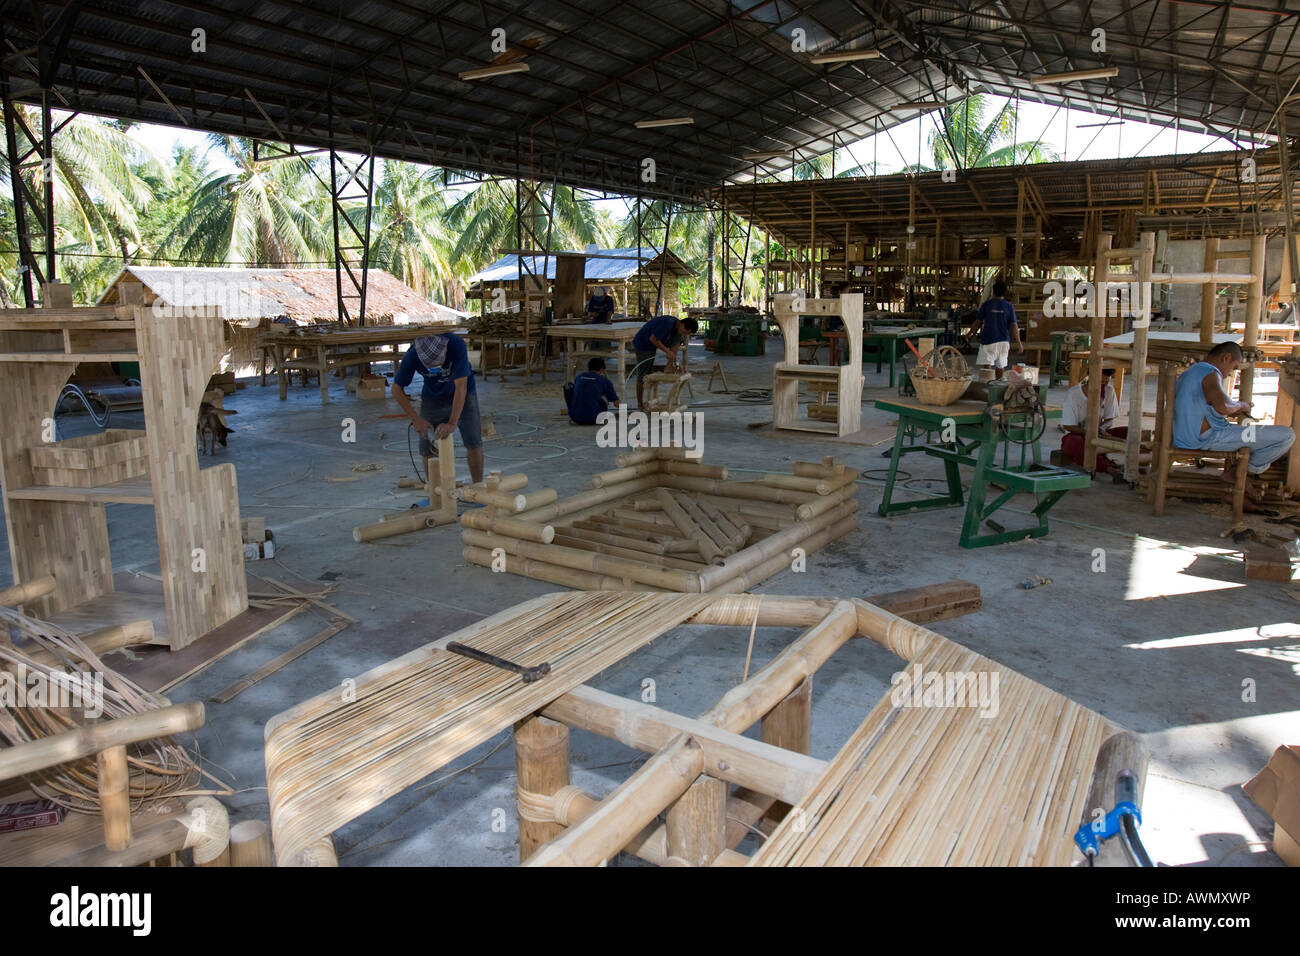 Bamboo being processed at a furniture factory in negros for Furniture factory